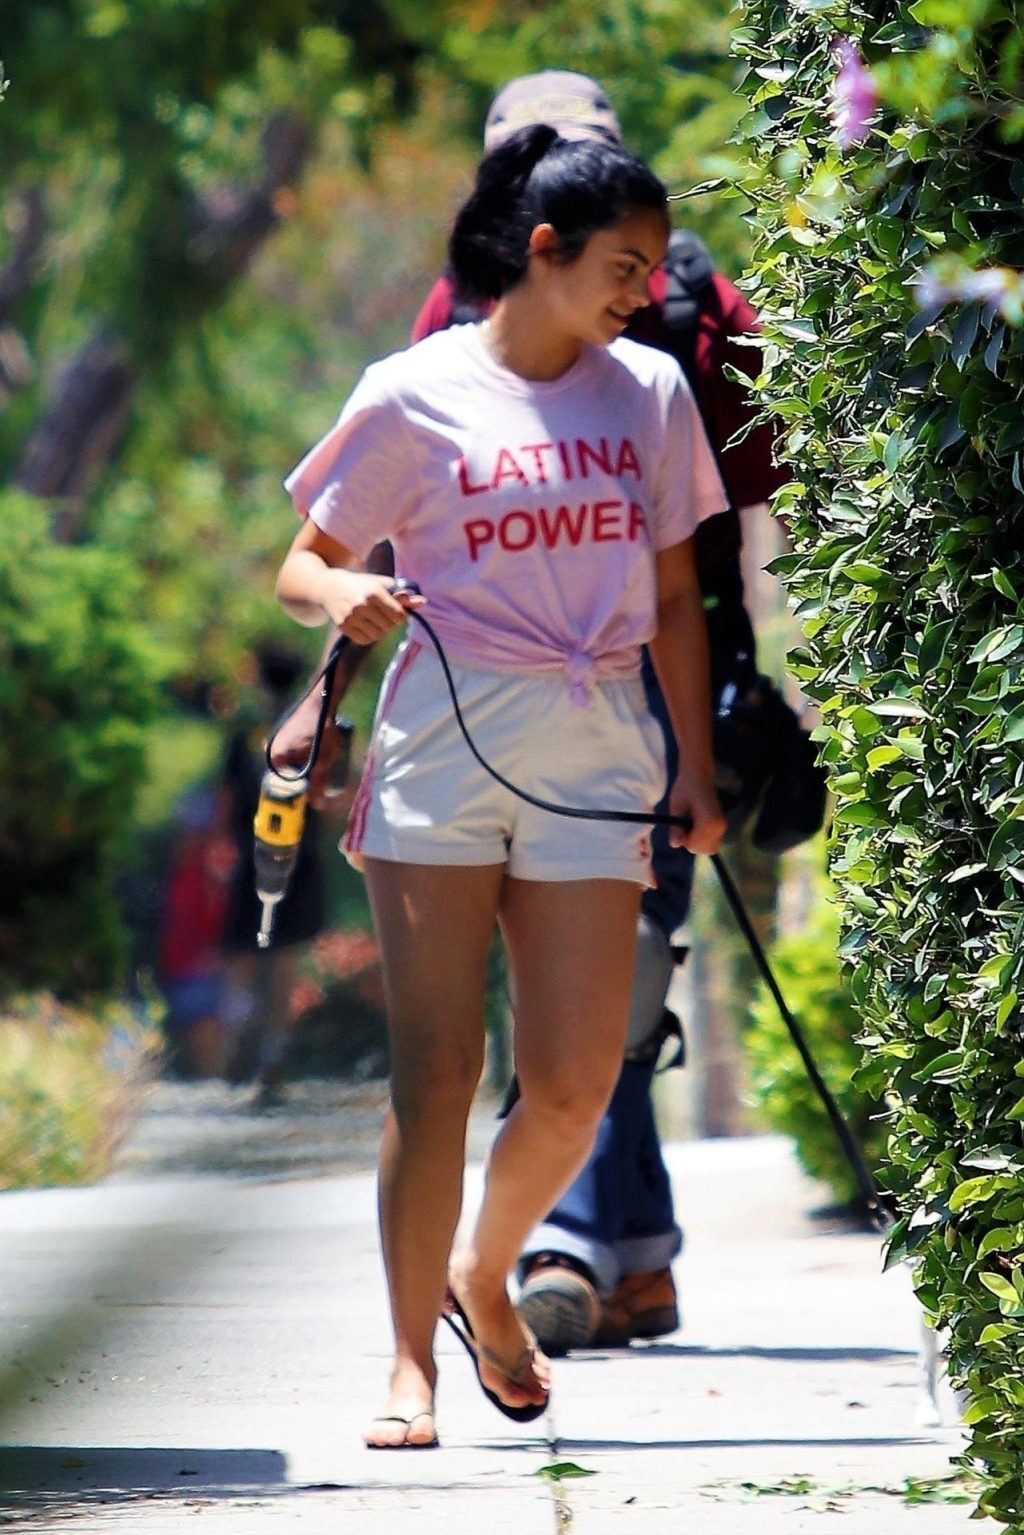 Camila Mendes Is Proud of Her Latina Power (10 Photos)